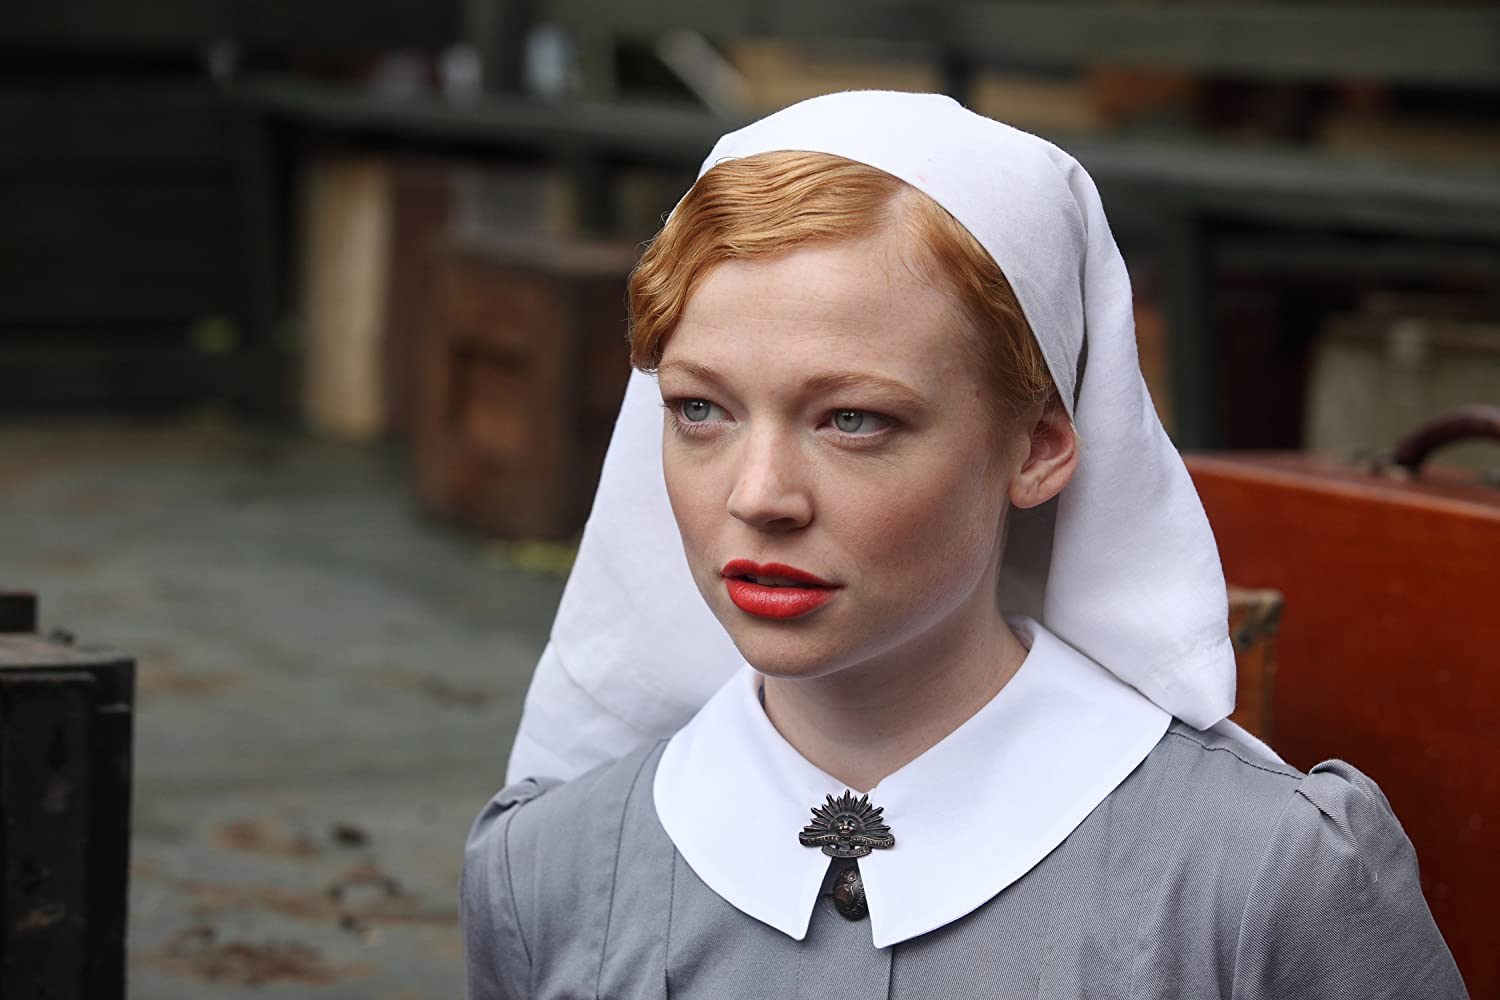 Sarah Snook nude (44 foto and video), Tits, Hot, Selfie, butt 2006